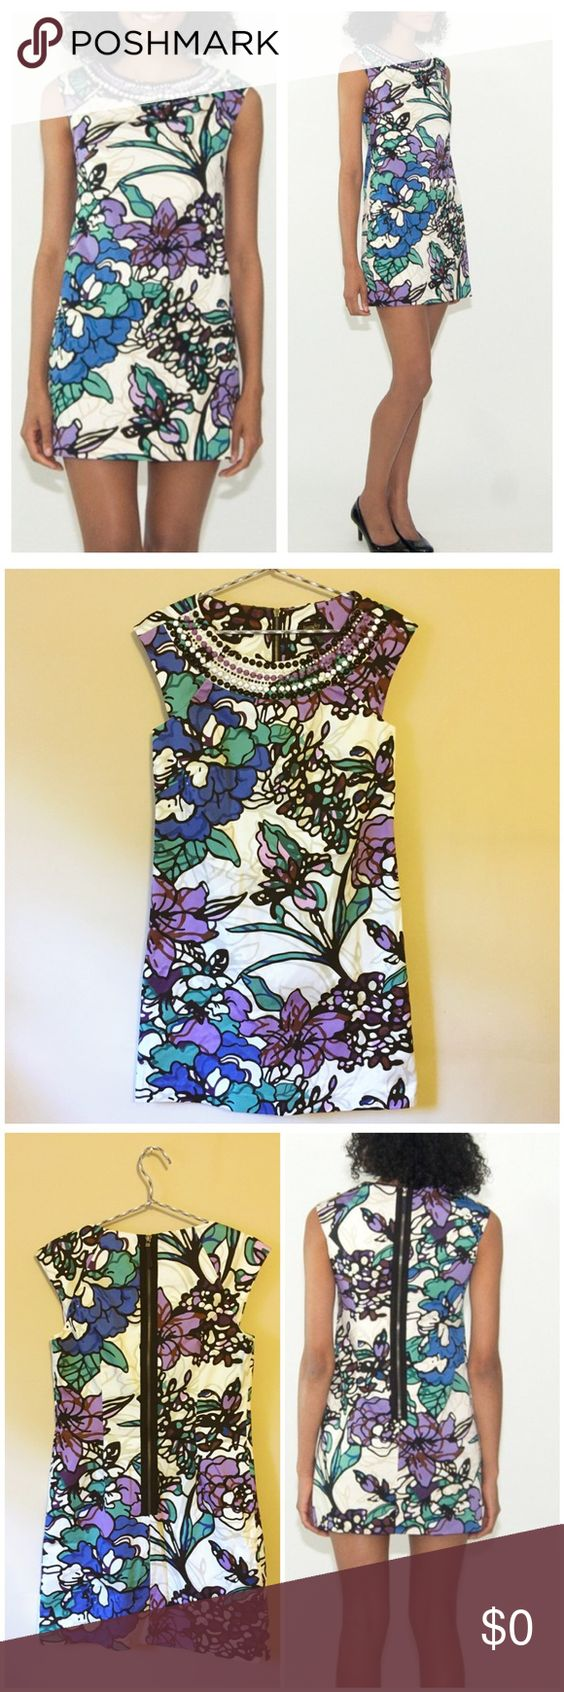 """Laundry Blue Snow Floral Beaded Cotton Shift Dress New Without Tags --- Laundry Blue Snow Floral Beaded Stretch Cotton Shift Dress --- size 4 --- by Shelli Segal --- fully lined --- Shell is 98% cotton 2% spandex --- bold  floral print on a white background ---  yoke is embellished with five rows of beading in the colors of black white and purple ---  expose back zipper --- 17.5"""" bust --- 33"""" length --- 16.5"""" waist --- 19"""" hips --- thank you for visiting my boutique, please feel free to ask…"""